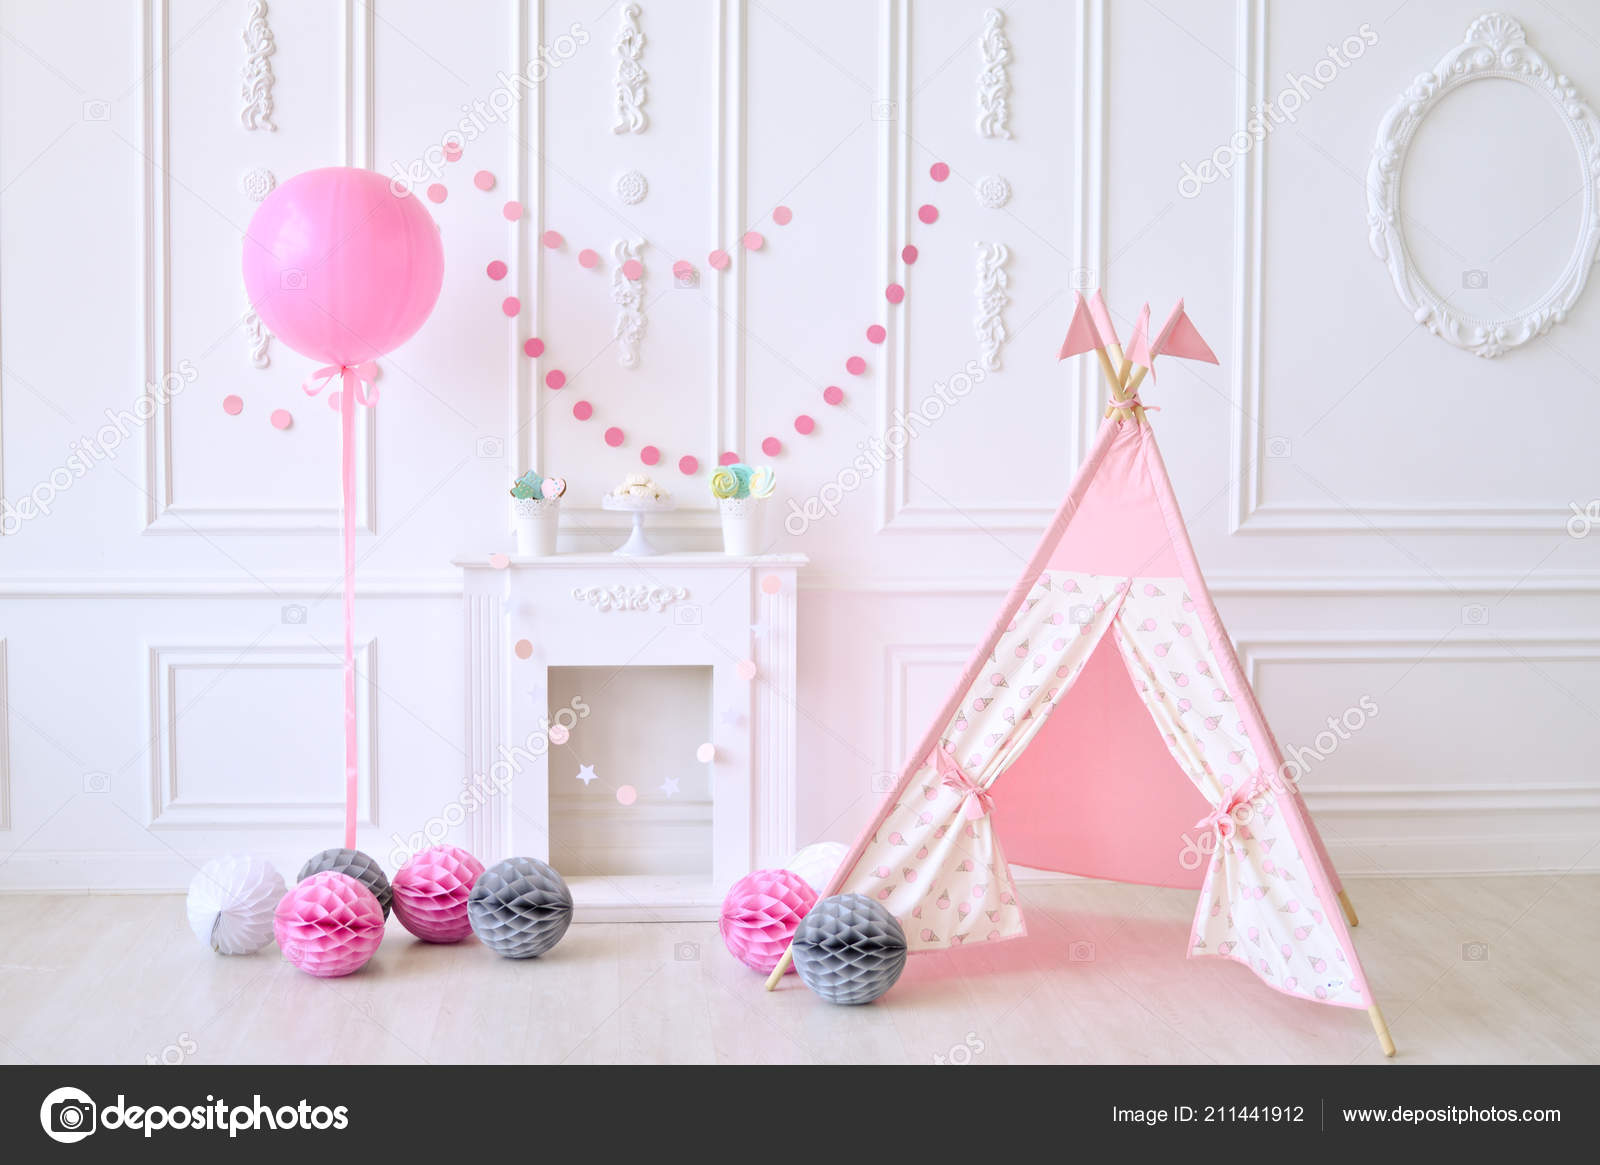 Children Birthday Decorations Holiday Party Girl Lot Balloons Stockfoto